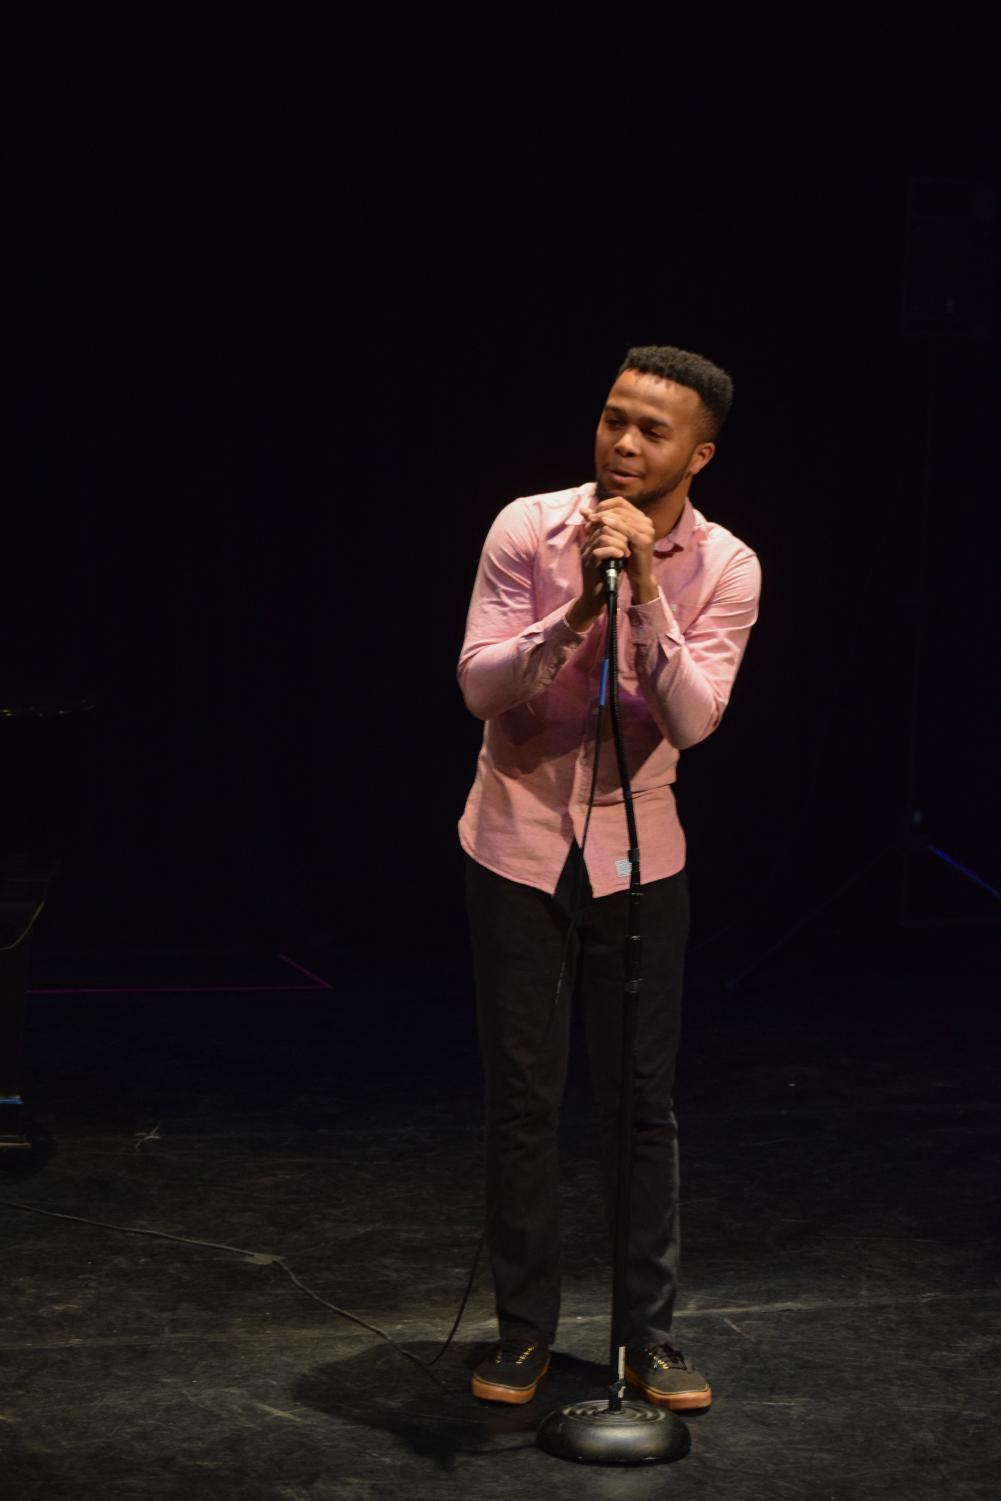 "Vocal senior Dylan Melville made the crowd emotional, dedicating the performance to his 5-year-old cousin who recently passed away. ""It's a song I always hoped to sing to him, and I know he was here watching over me,"" Melville said. His cover of the song, ""Light in the Hallway"" by Audra May, drew a heartfelt reaction from the audience."